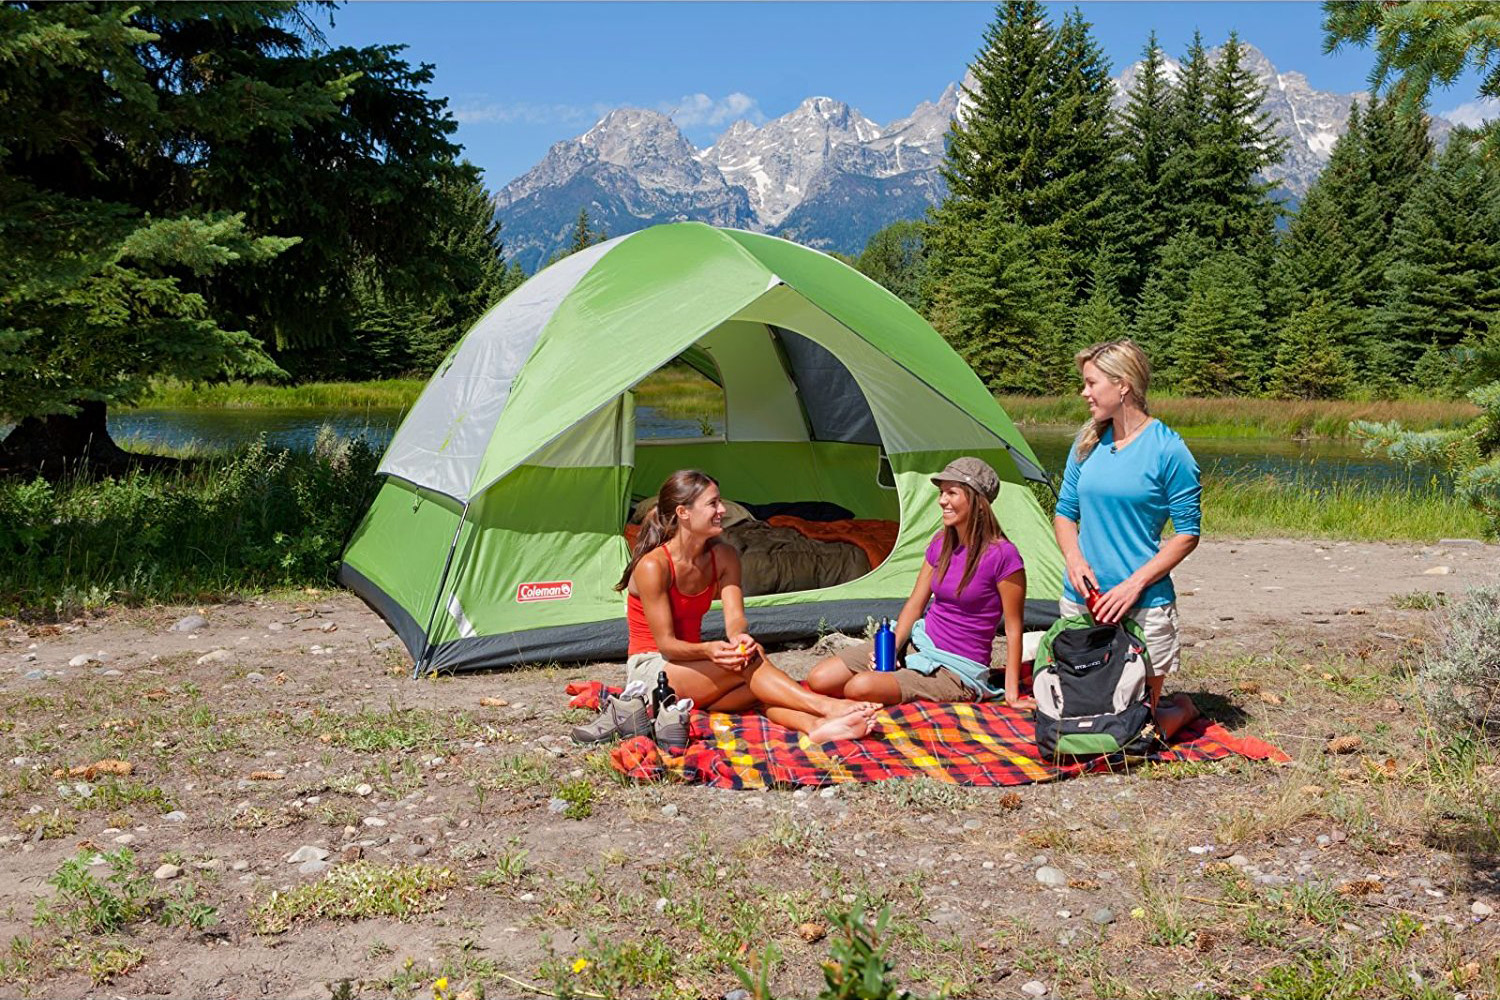 Need A Tent For A Growing Family? How About The Best 6 ...